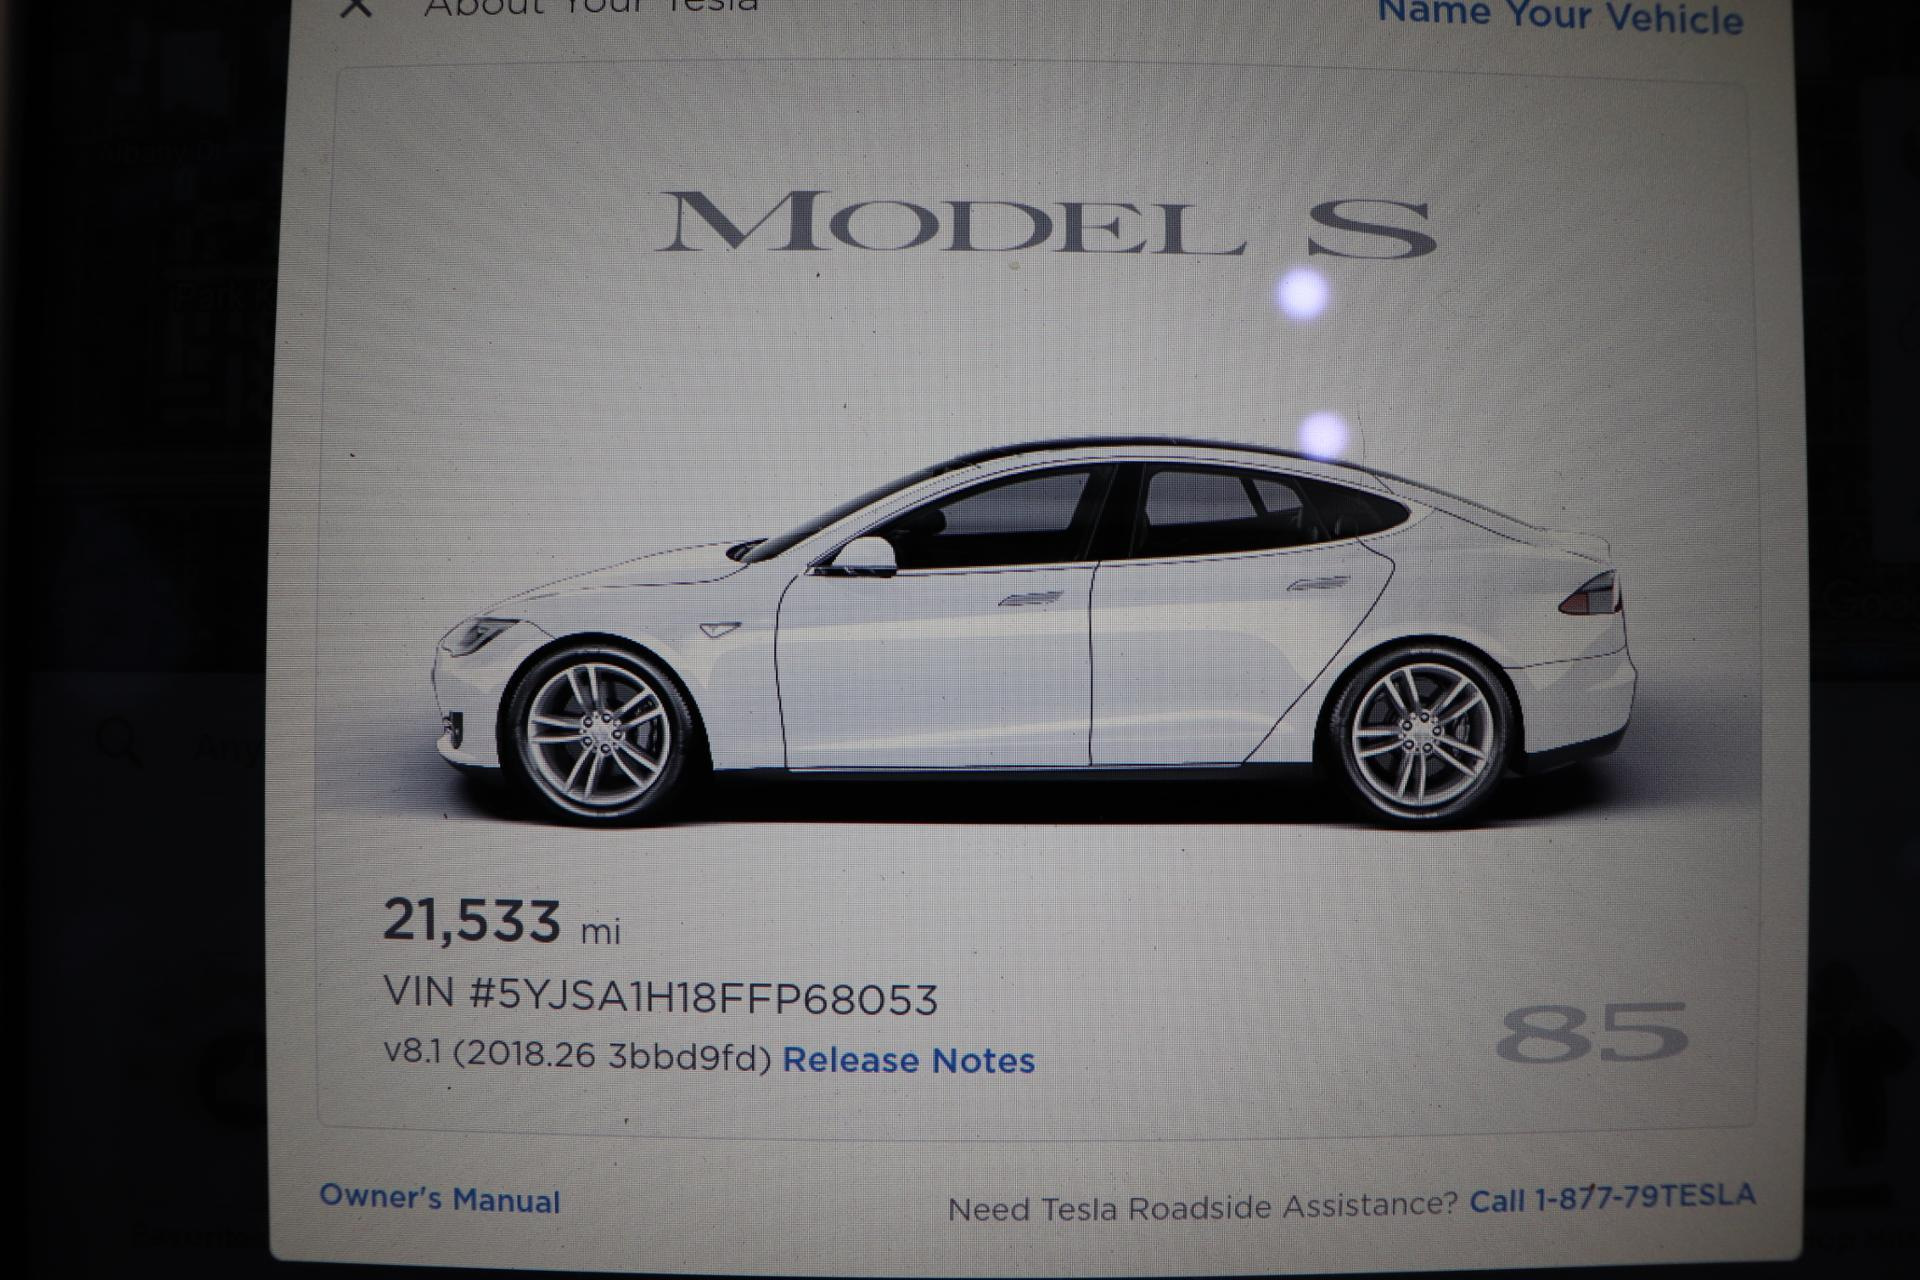 Used 2015 Tesla Model S For Sale San Jose Ca Vin 5yjsa1h18ffp68053